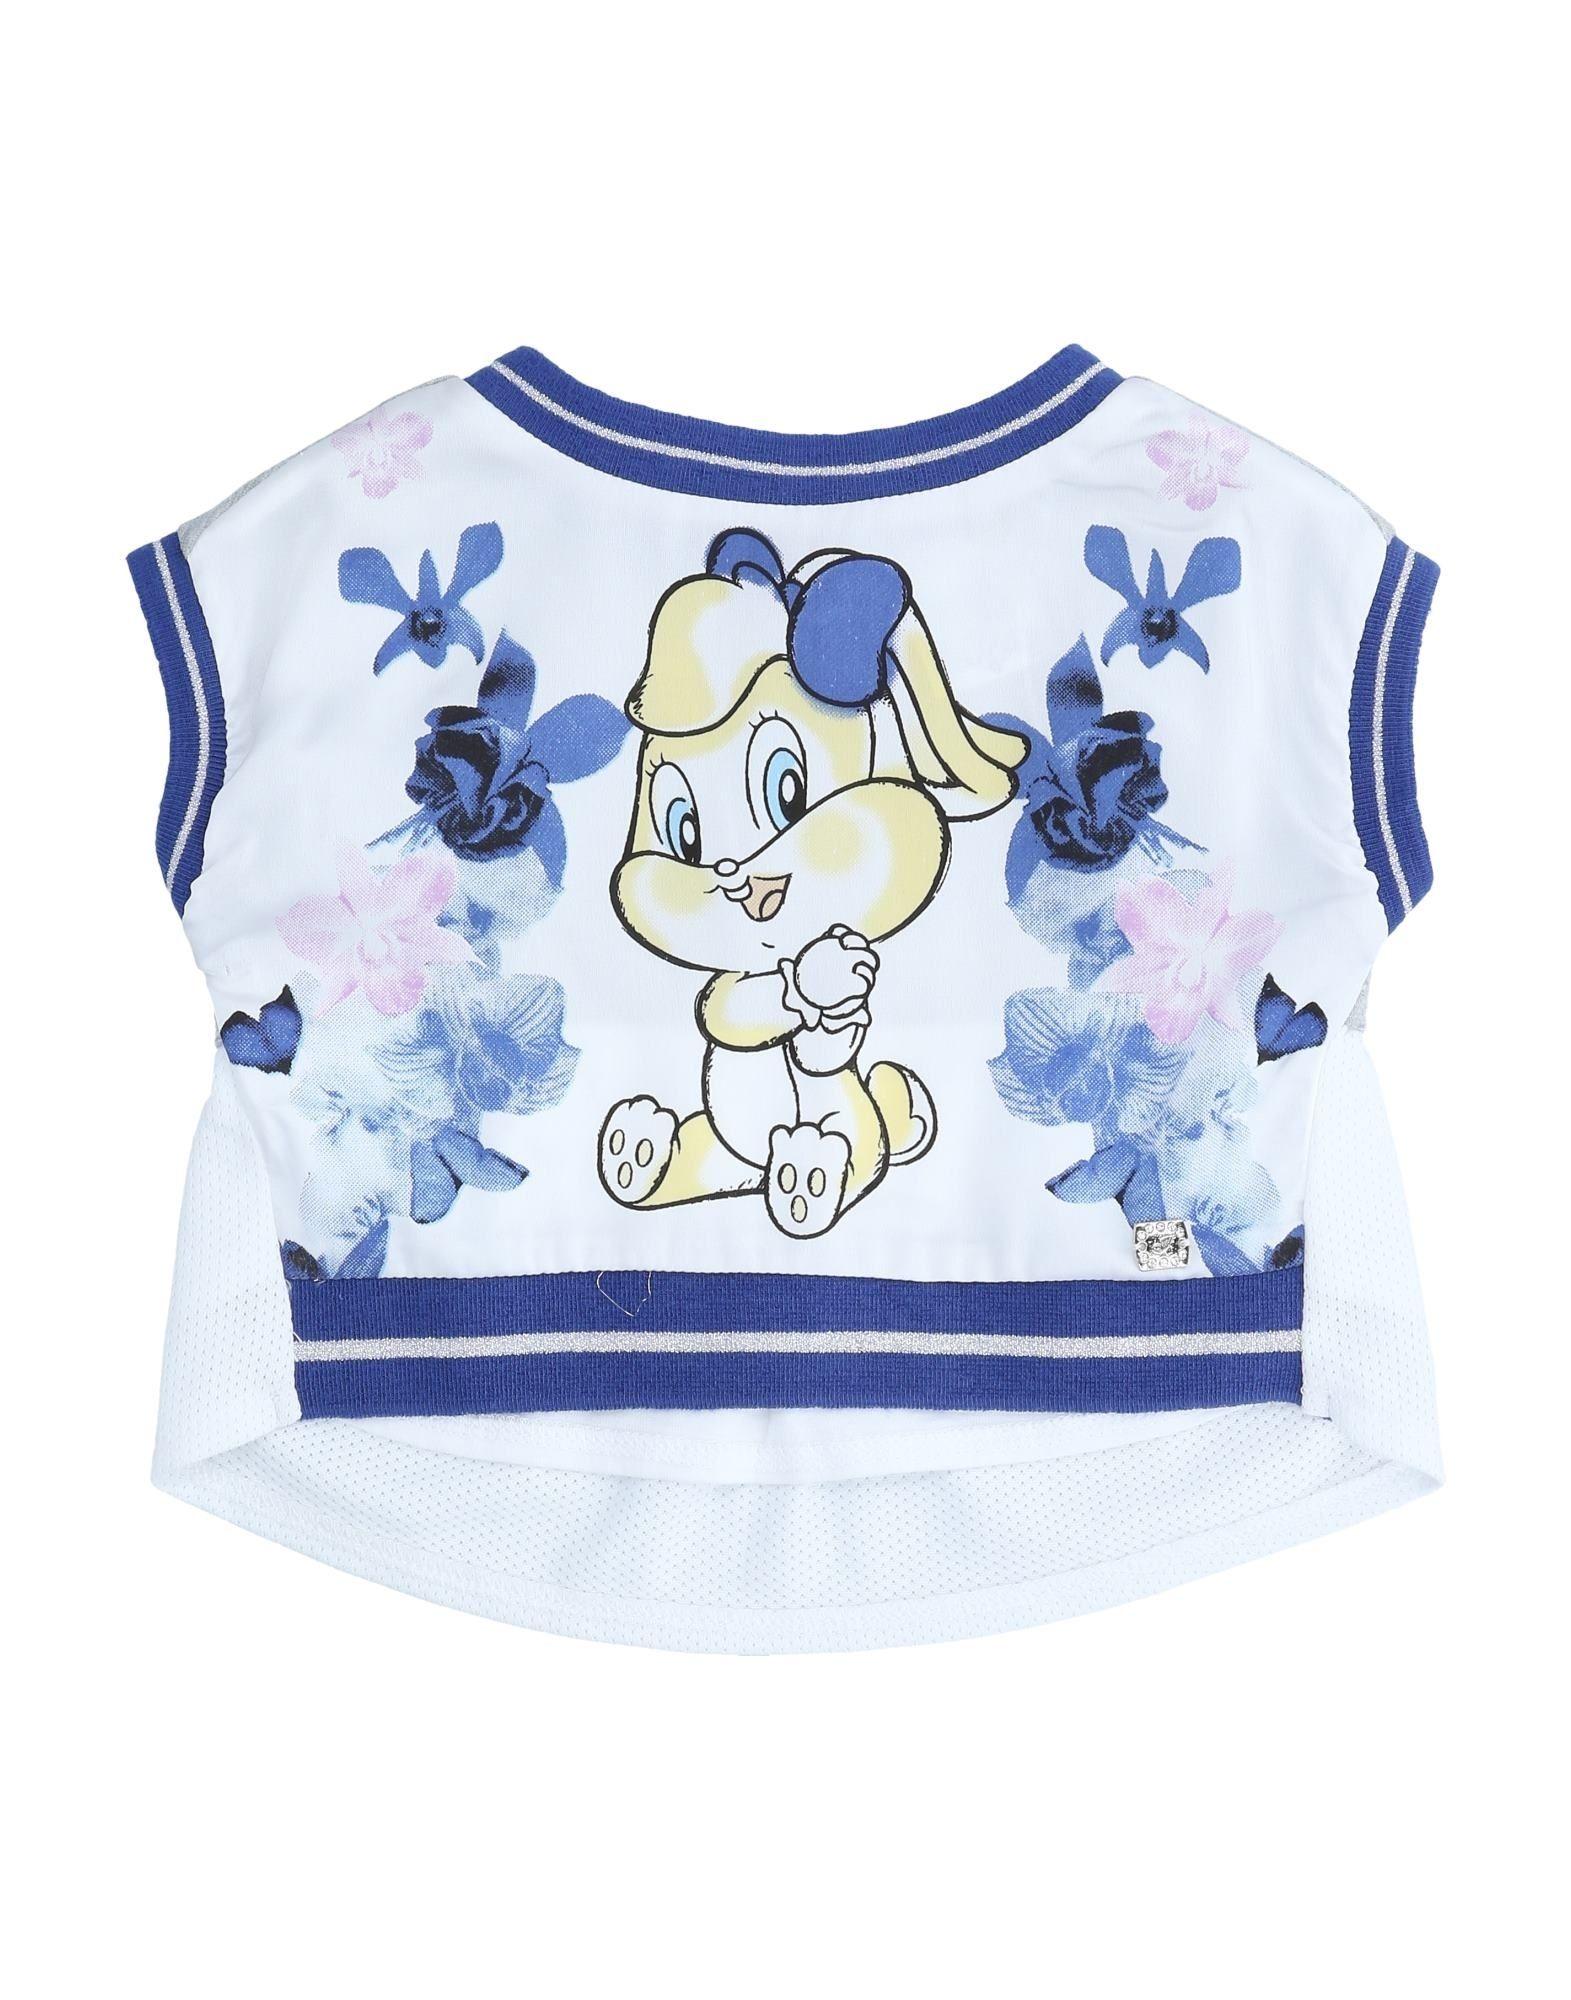 Looney Tunes Kids' T-shirts In White